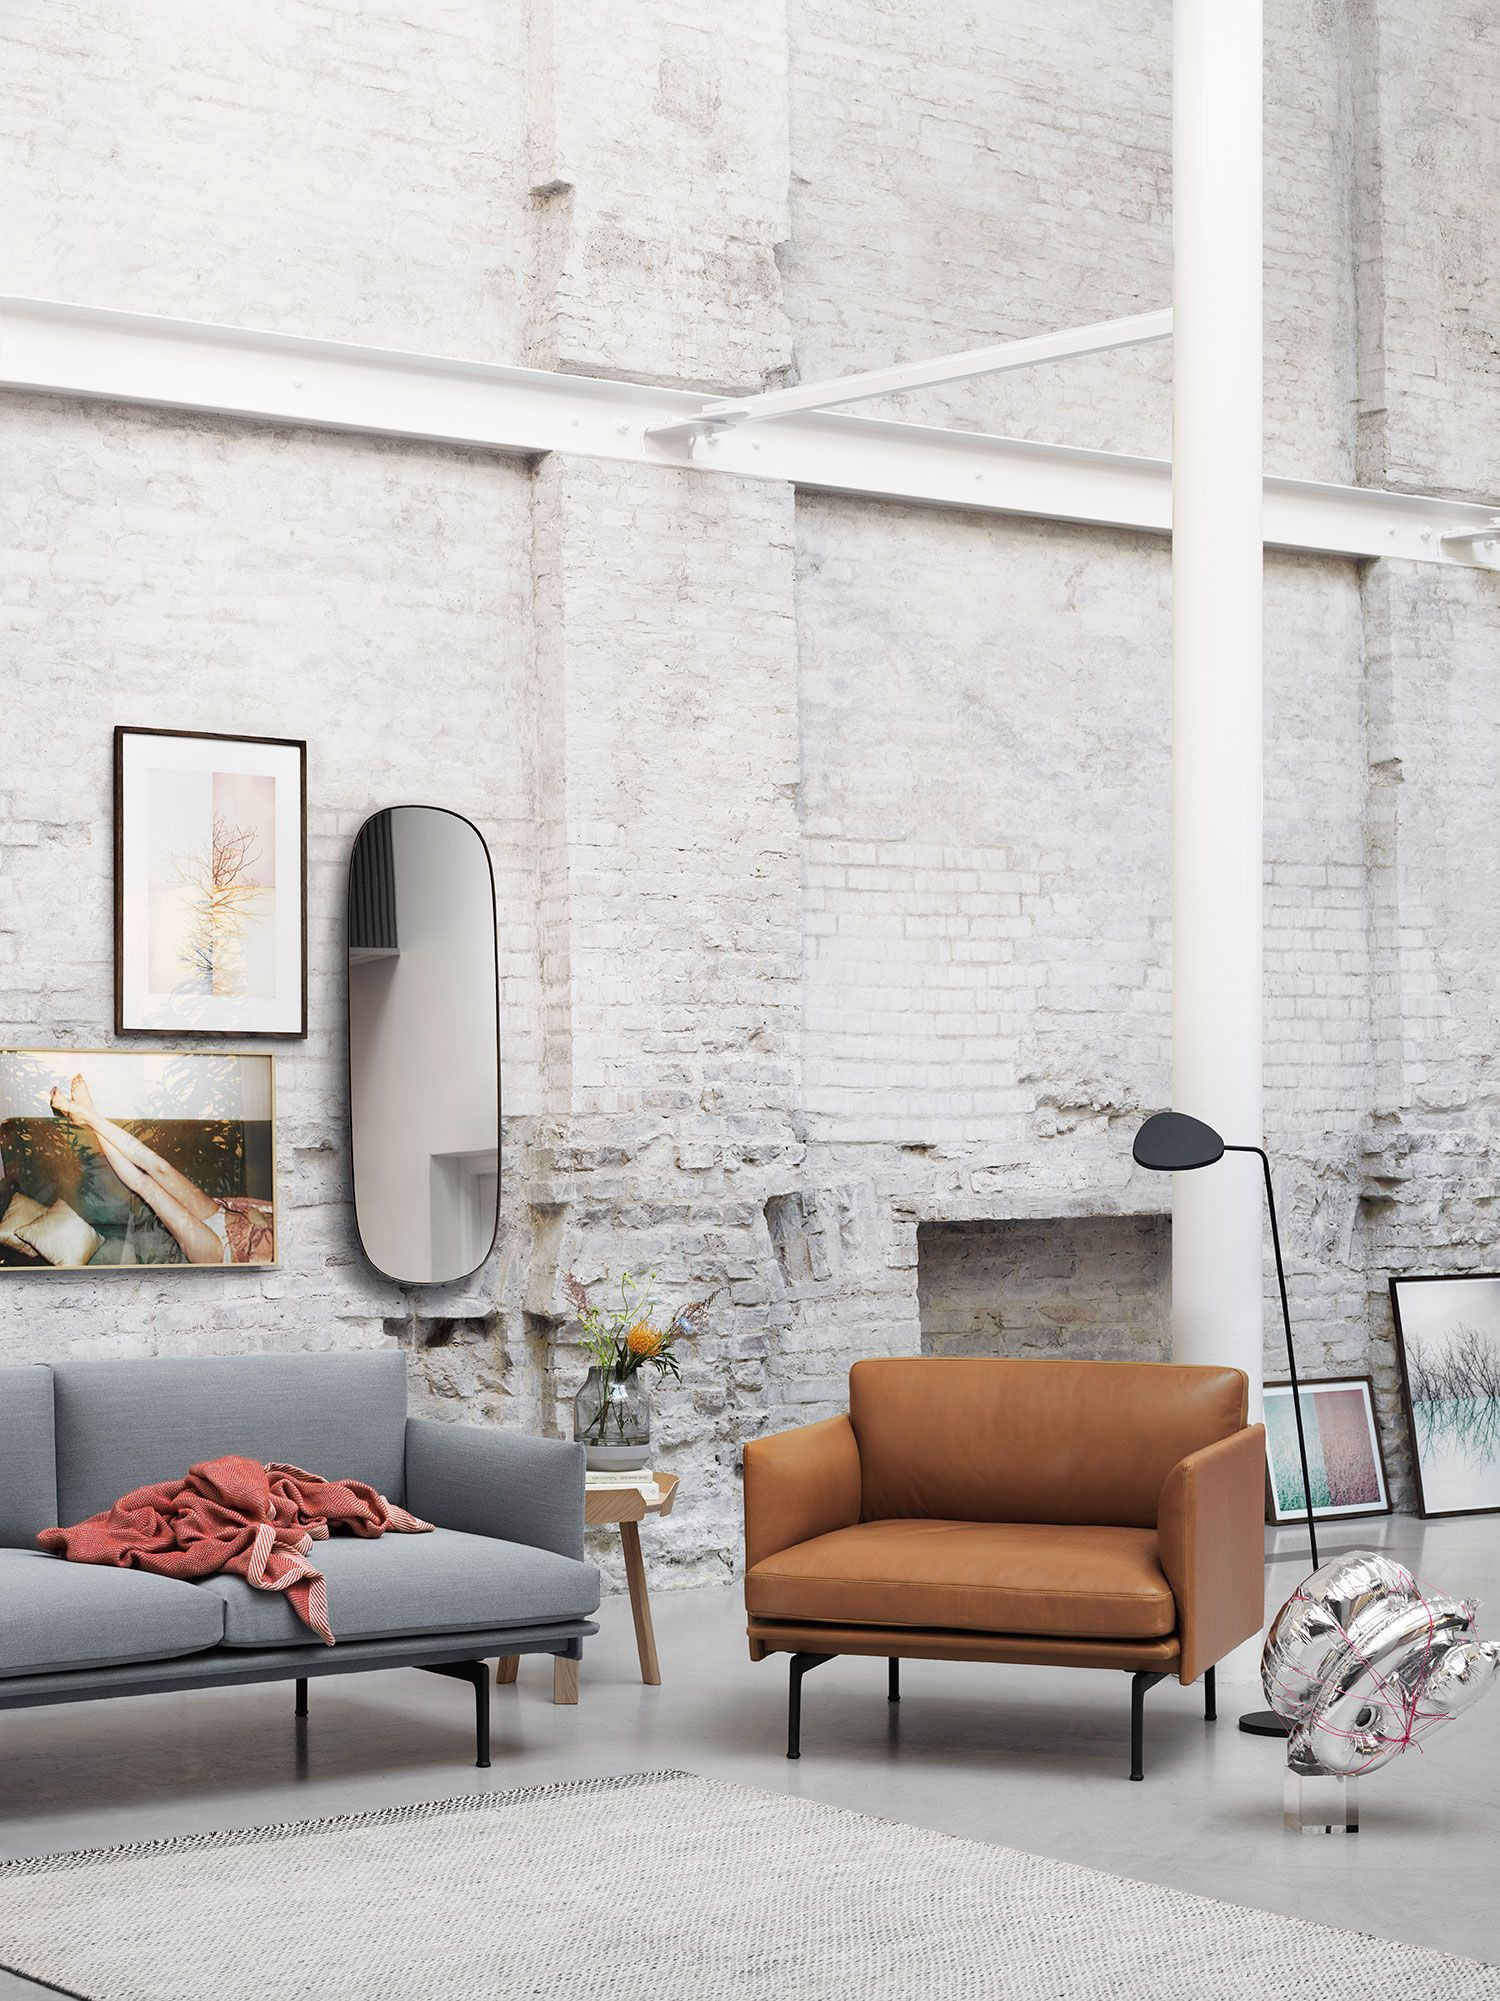 Simple Scandinavian Chair Inspiration From Muuto The Outline Series Adds New Perspectives To The Classic Scandinavian Design Sofas Of The 1960 S Marry Filigran